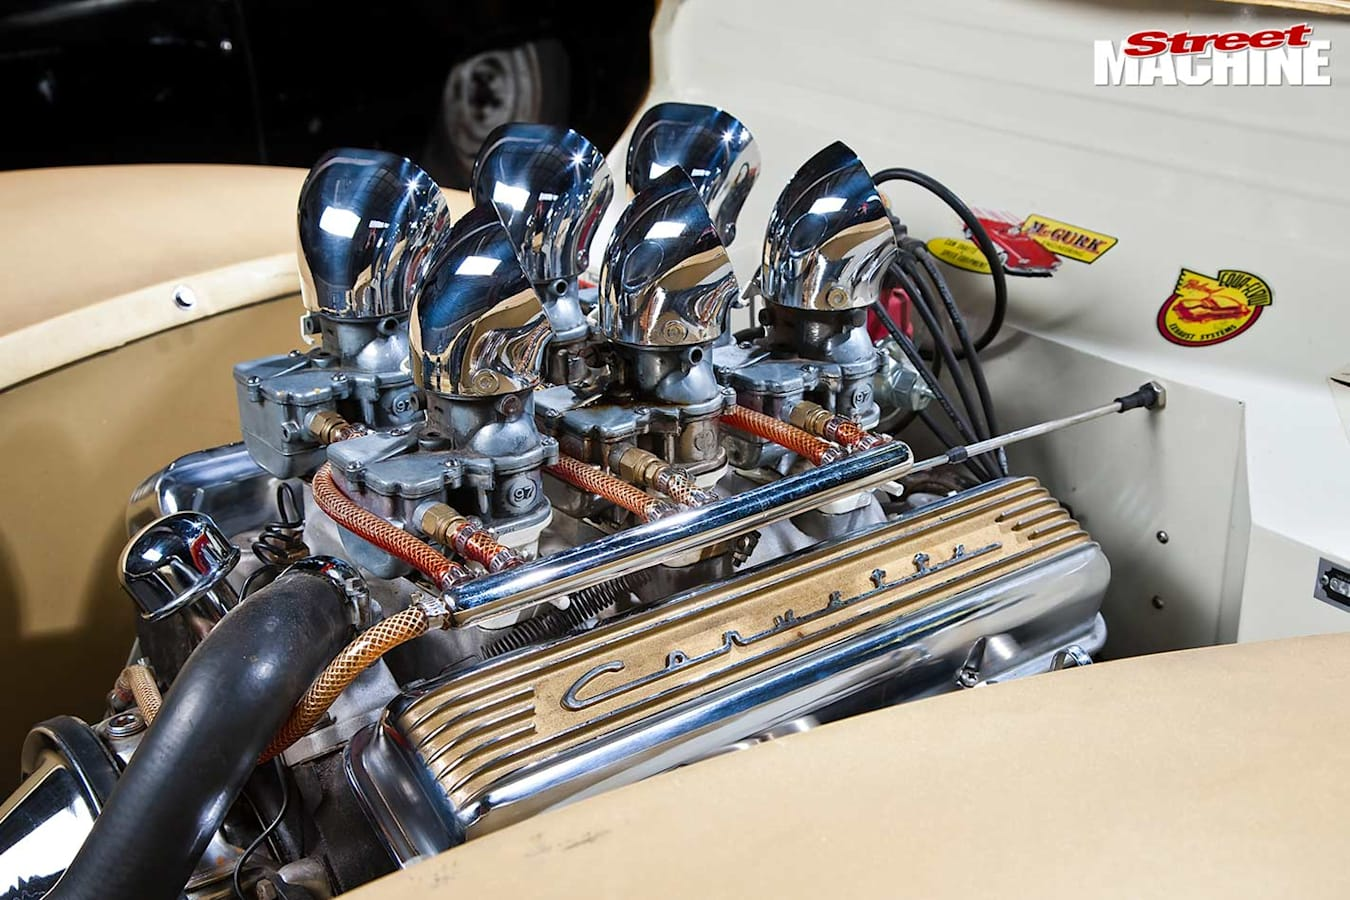 1940 Ford coupe engine bay